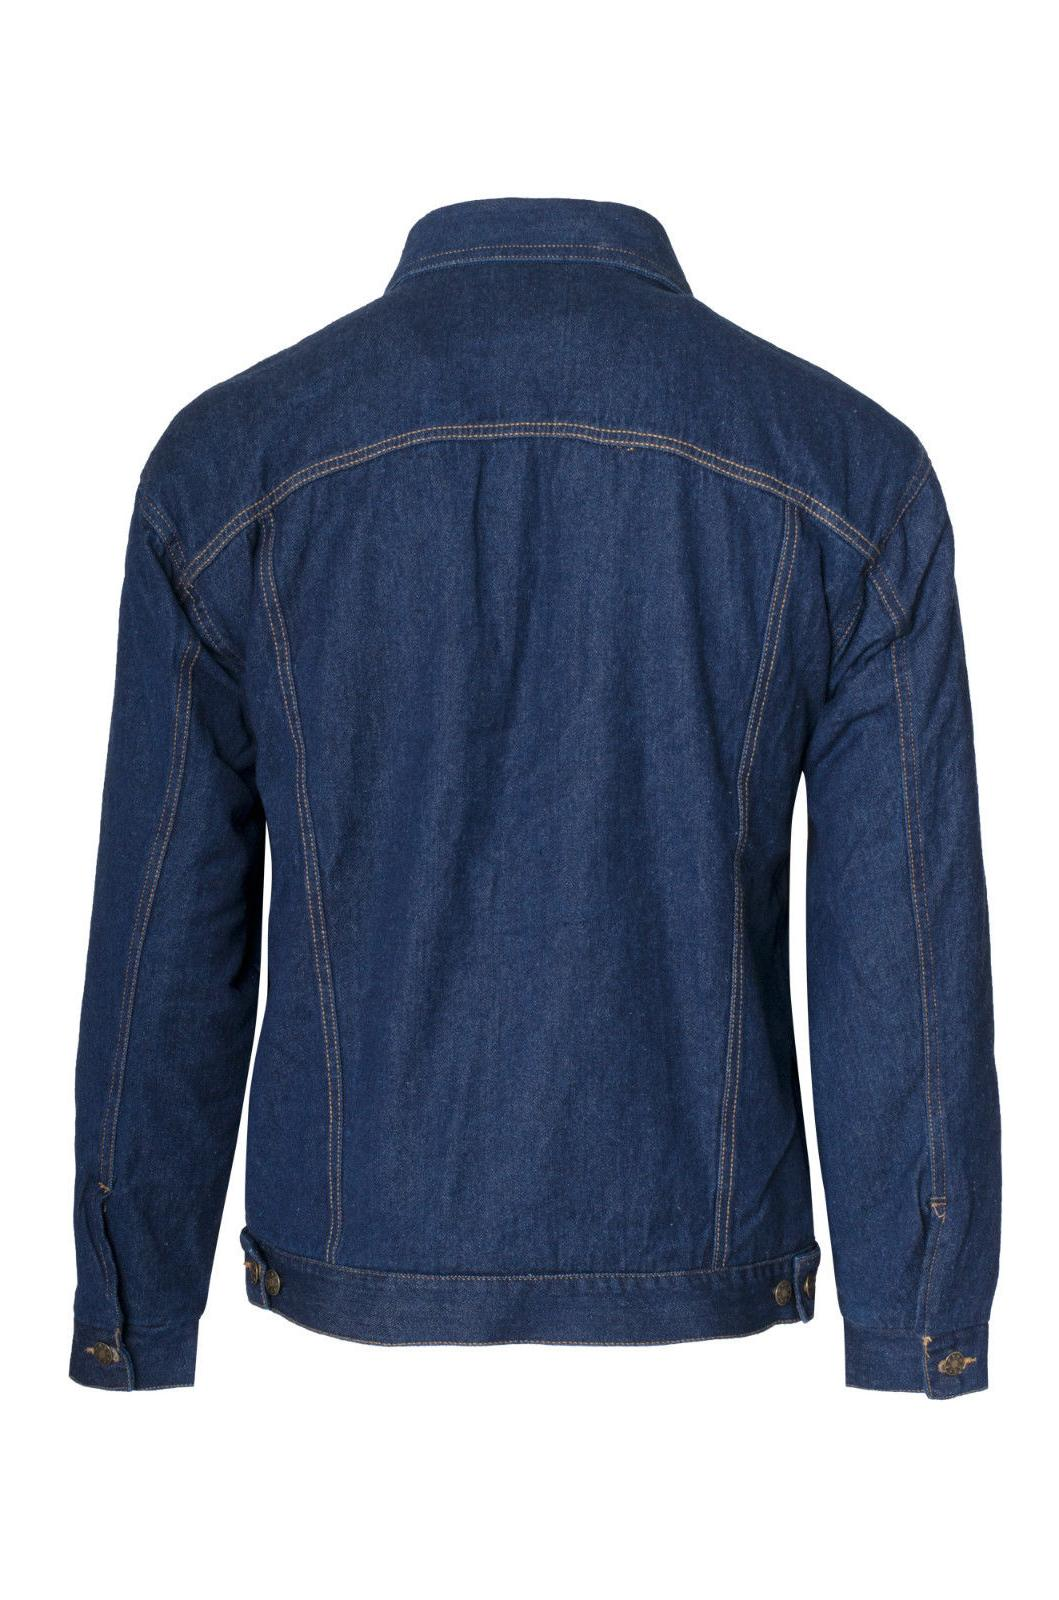 Mens Lined Jacket Long Thermal Jean Coat Button Up